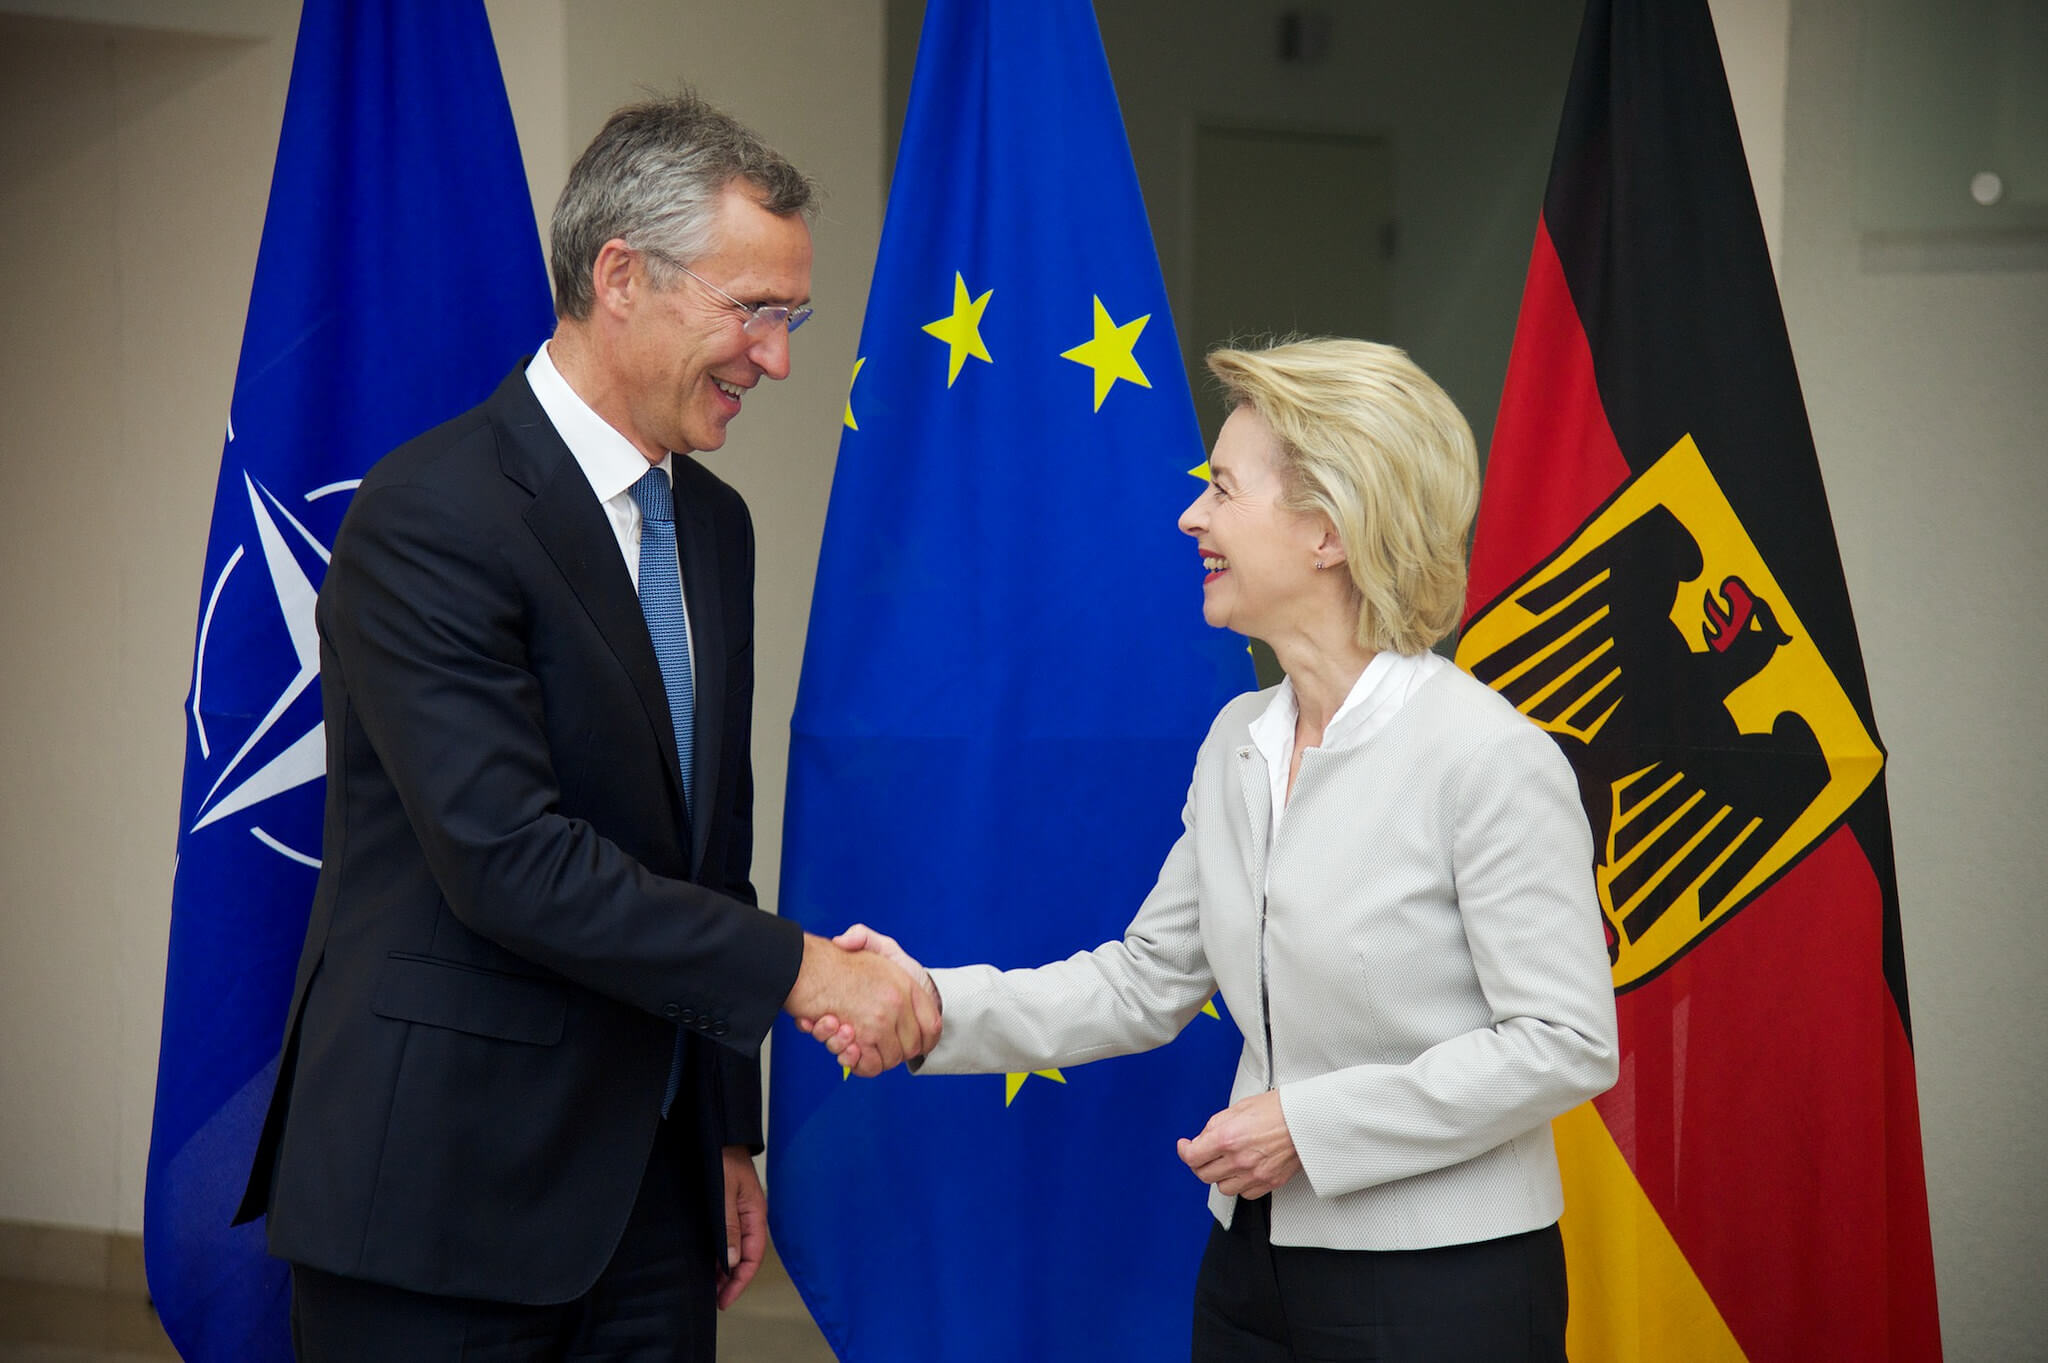 Homan-foto2-NATO Secretary General Jens Stoltenberg meets with the German Minister of Defence, Ursula von der Leyen-2 sept 2016-NATO-Flickr